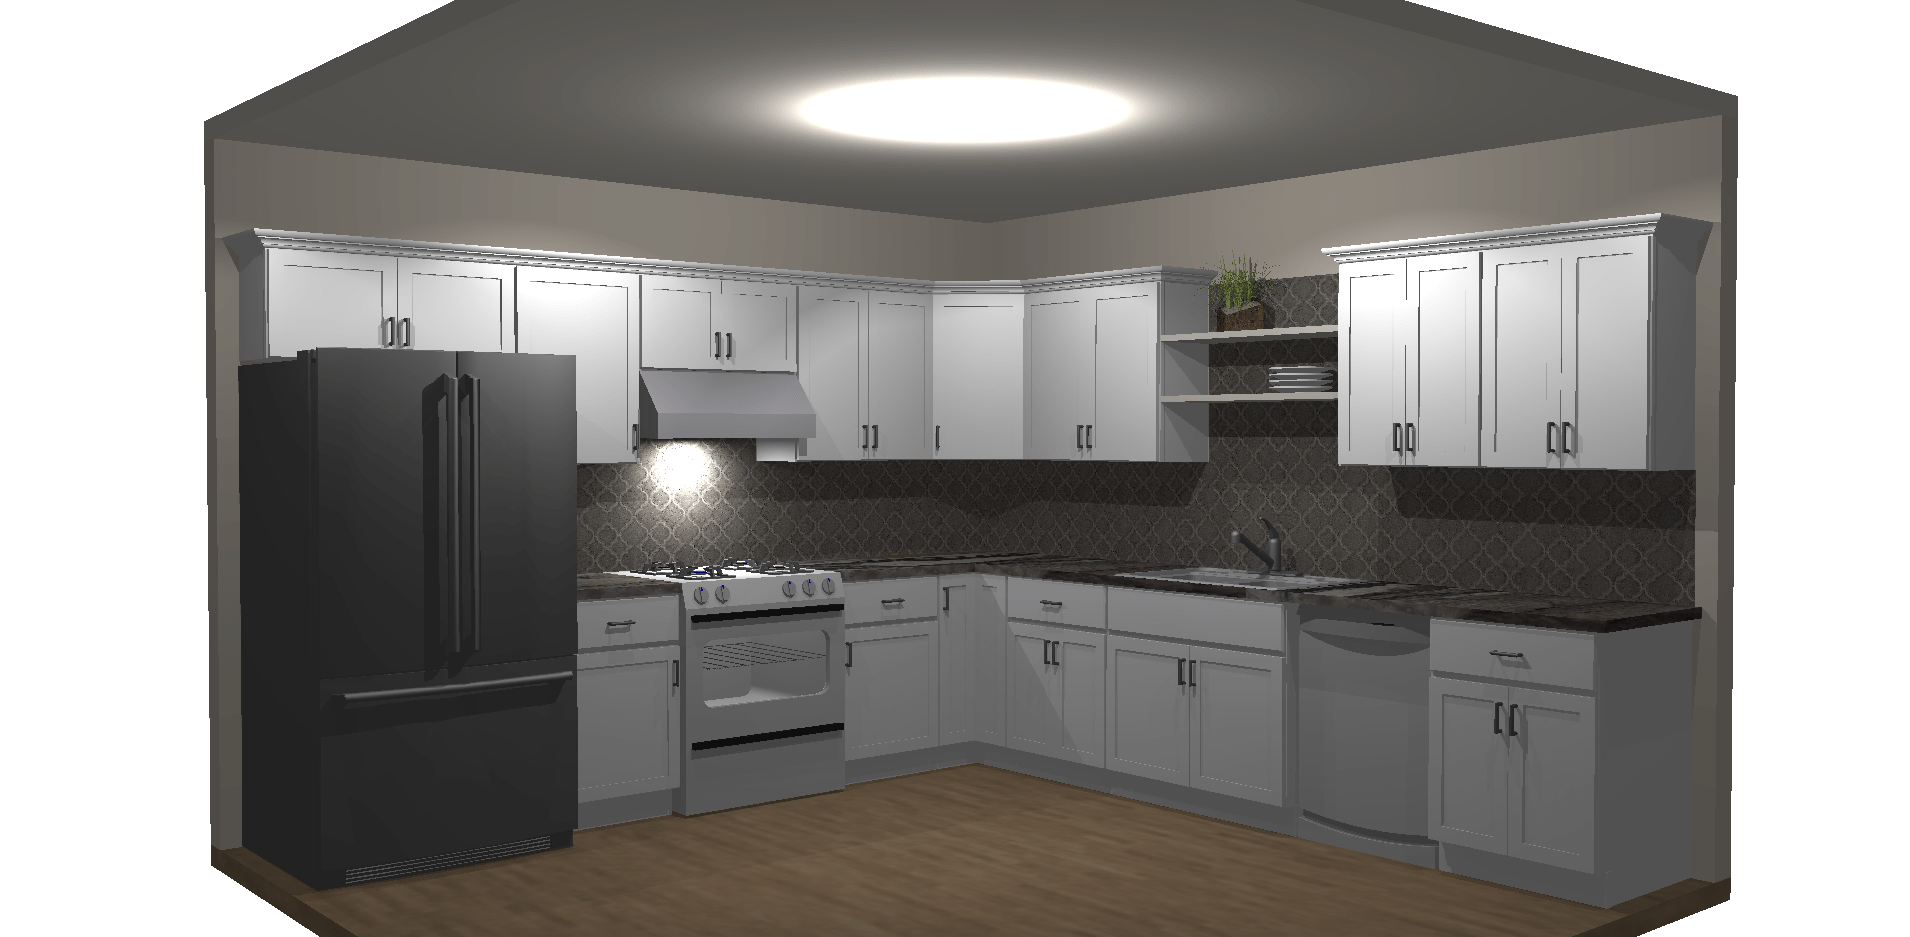 Planning Your Kitchen Layout